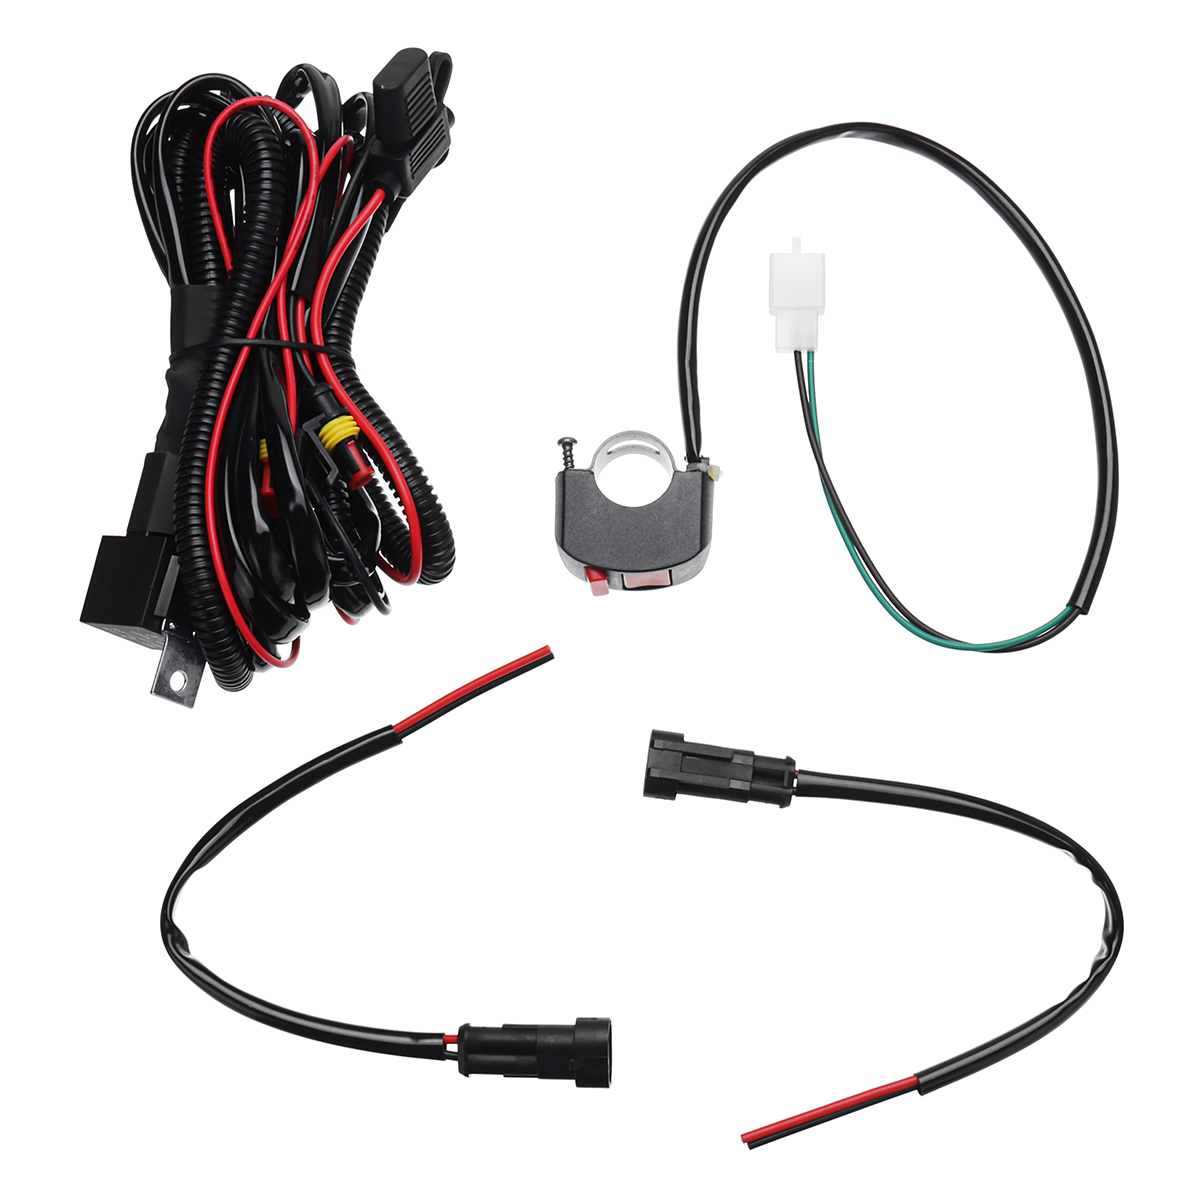 10A Relsy Switch Fog Light / Spot Wiring Loom Harness Kit For Un